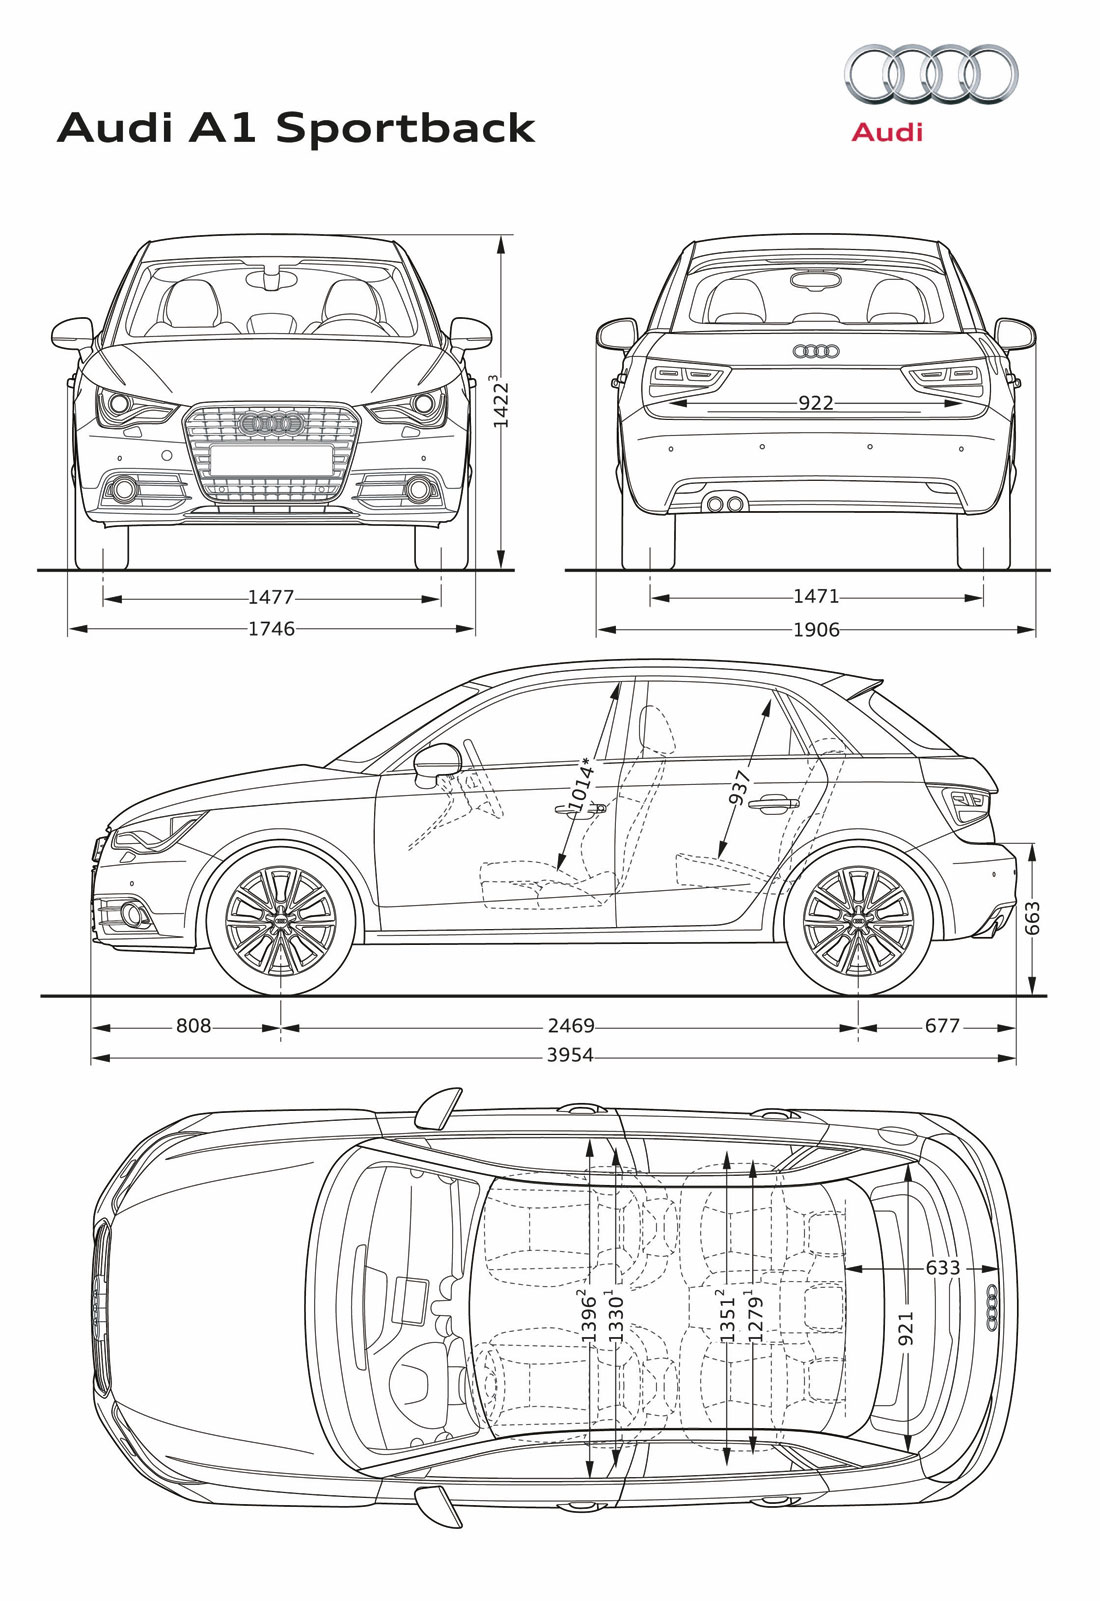 Audi A1 S Line 2012 Cartype Luggage Compartment Light Wiring Diagram For 1956 Studebaker Passenger Car Dimensions 12